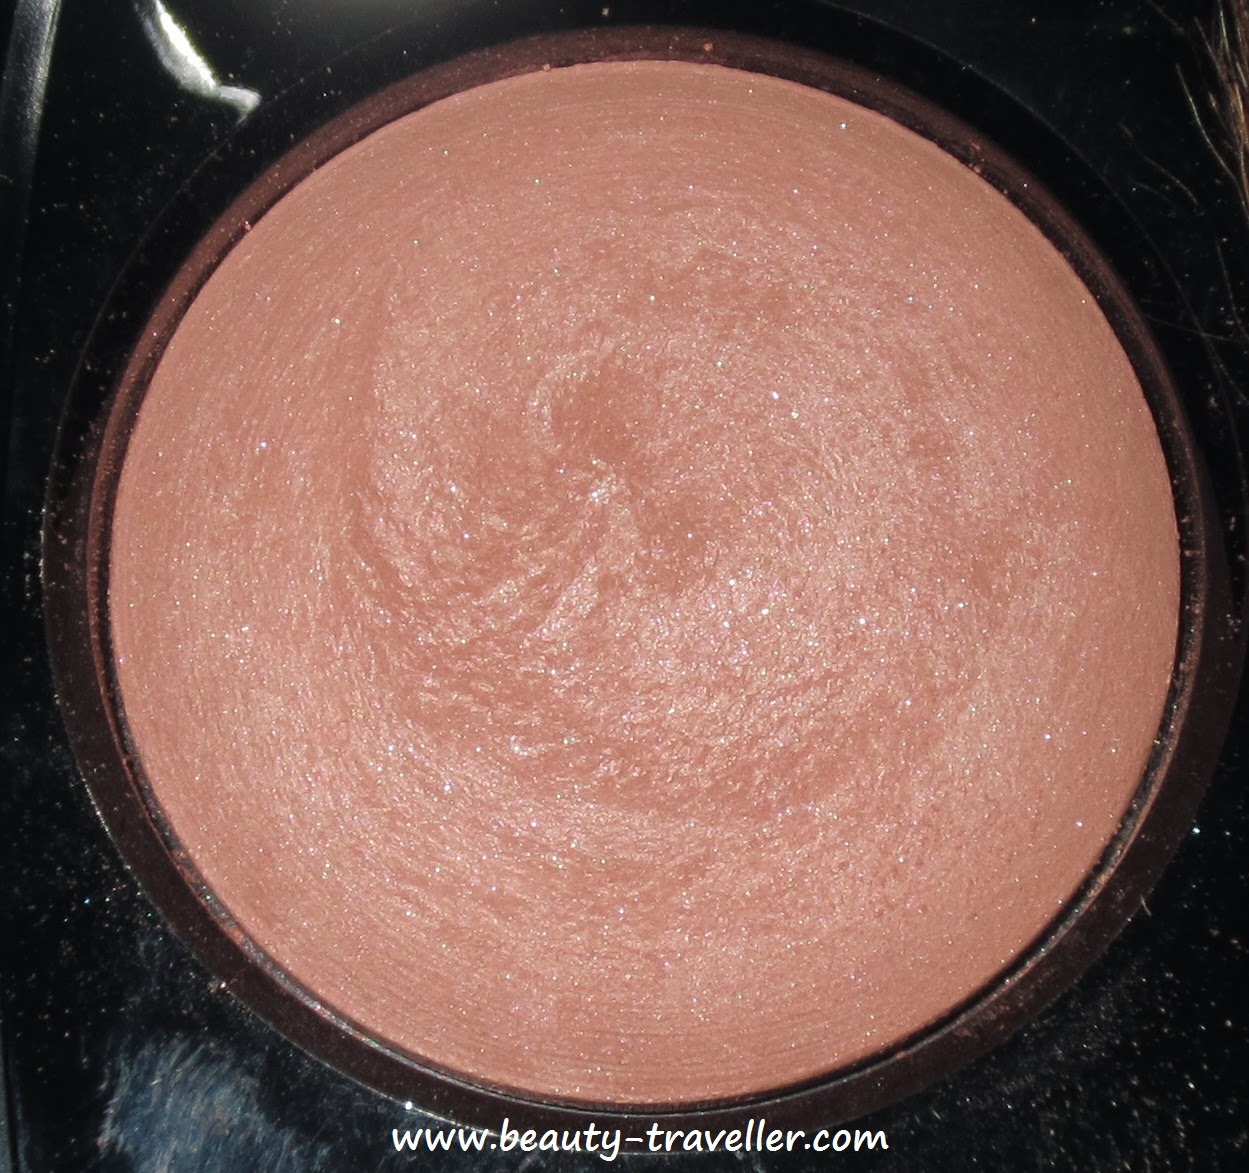 Chanel Rose Initial Petale Joues Contraste Blush